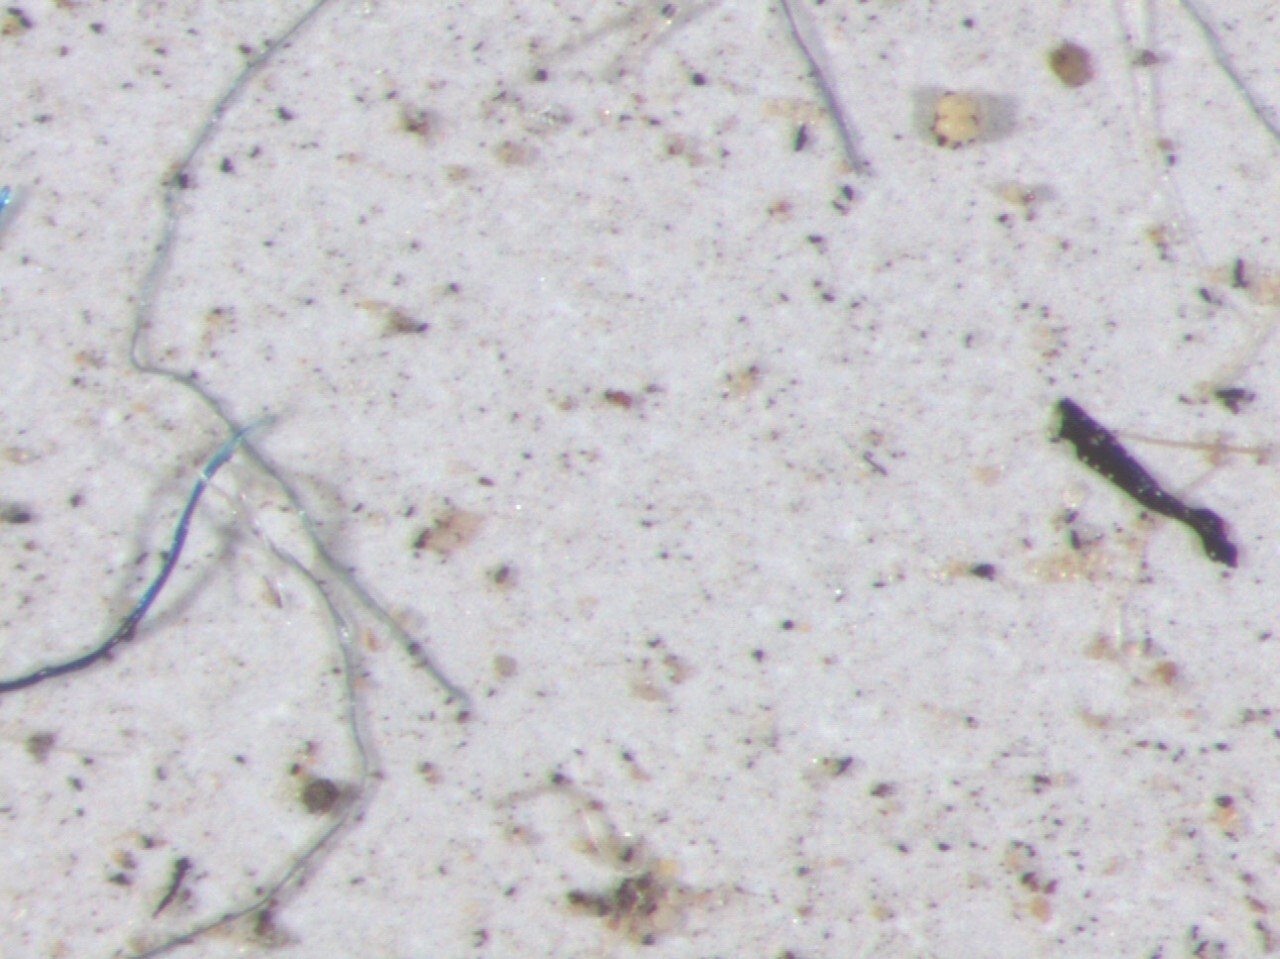 microplastic under the microscope